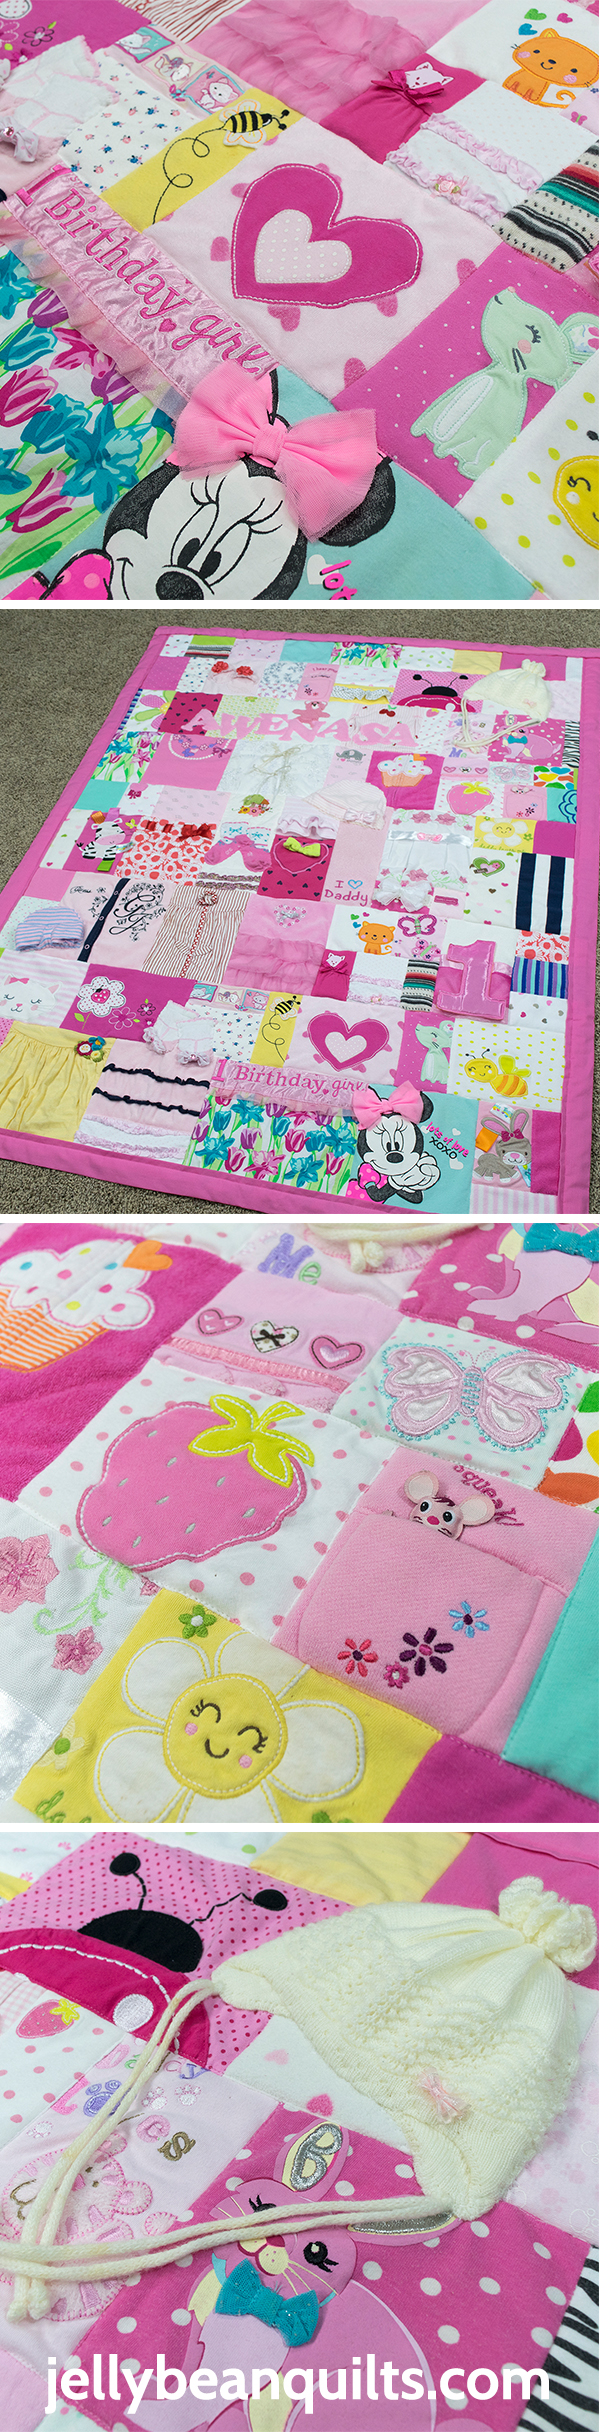 MUST DO with baby's first year clothes! Quilt from Baby Clothes - JellyBeanQuilts.com